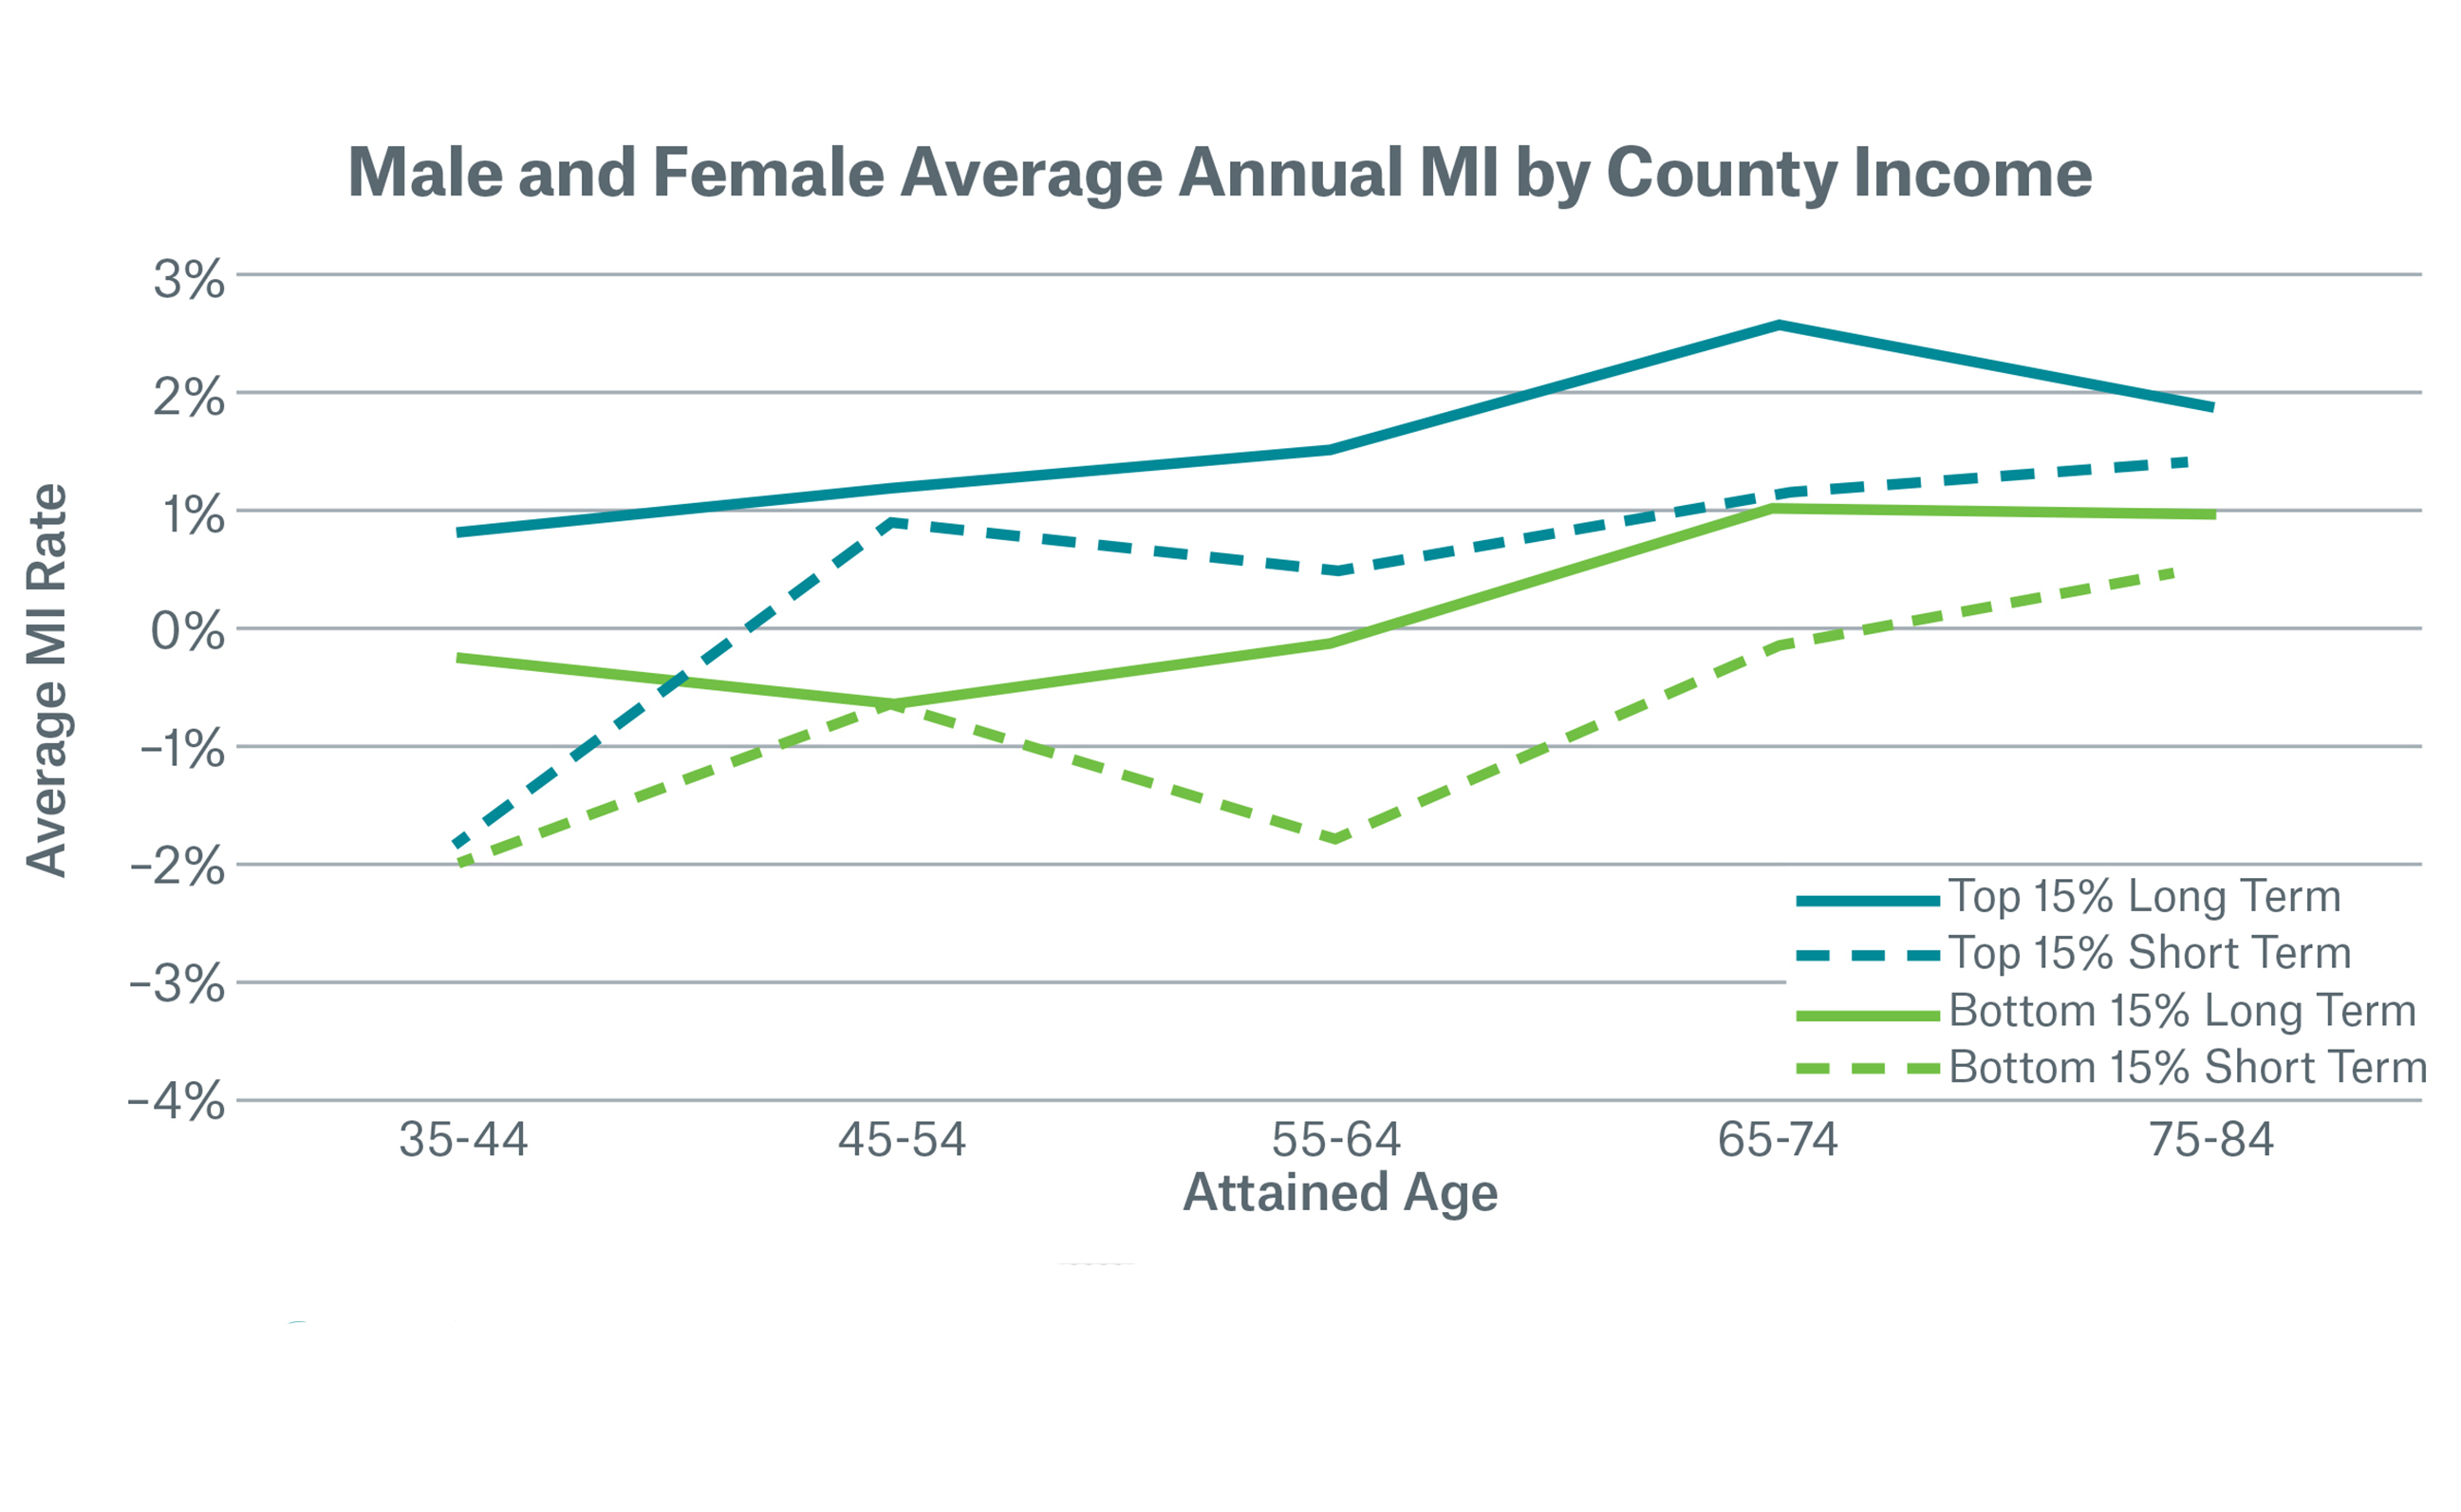 Male and Female Average Annual MI by County Income